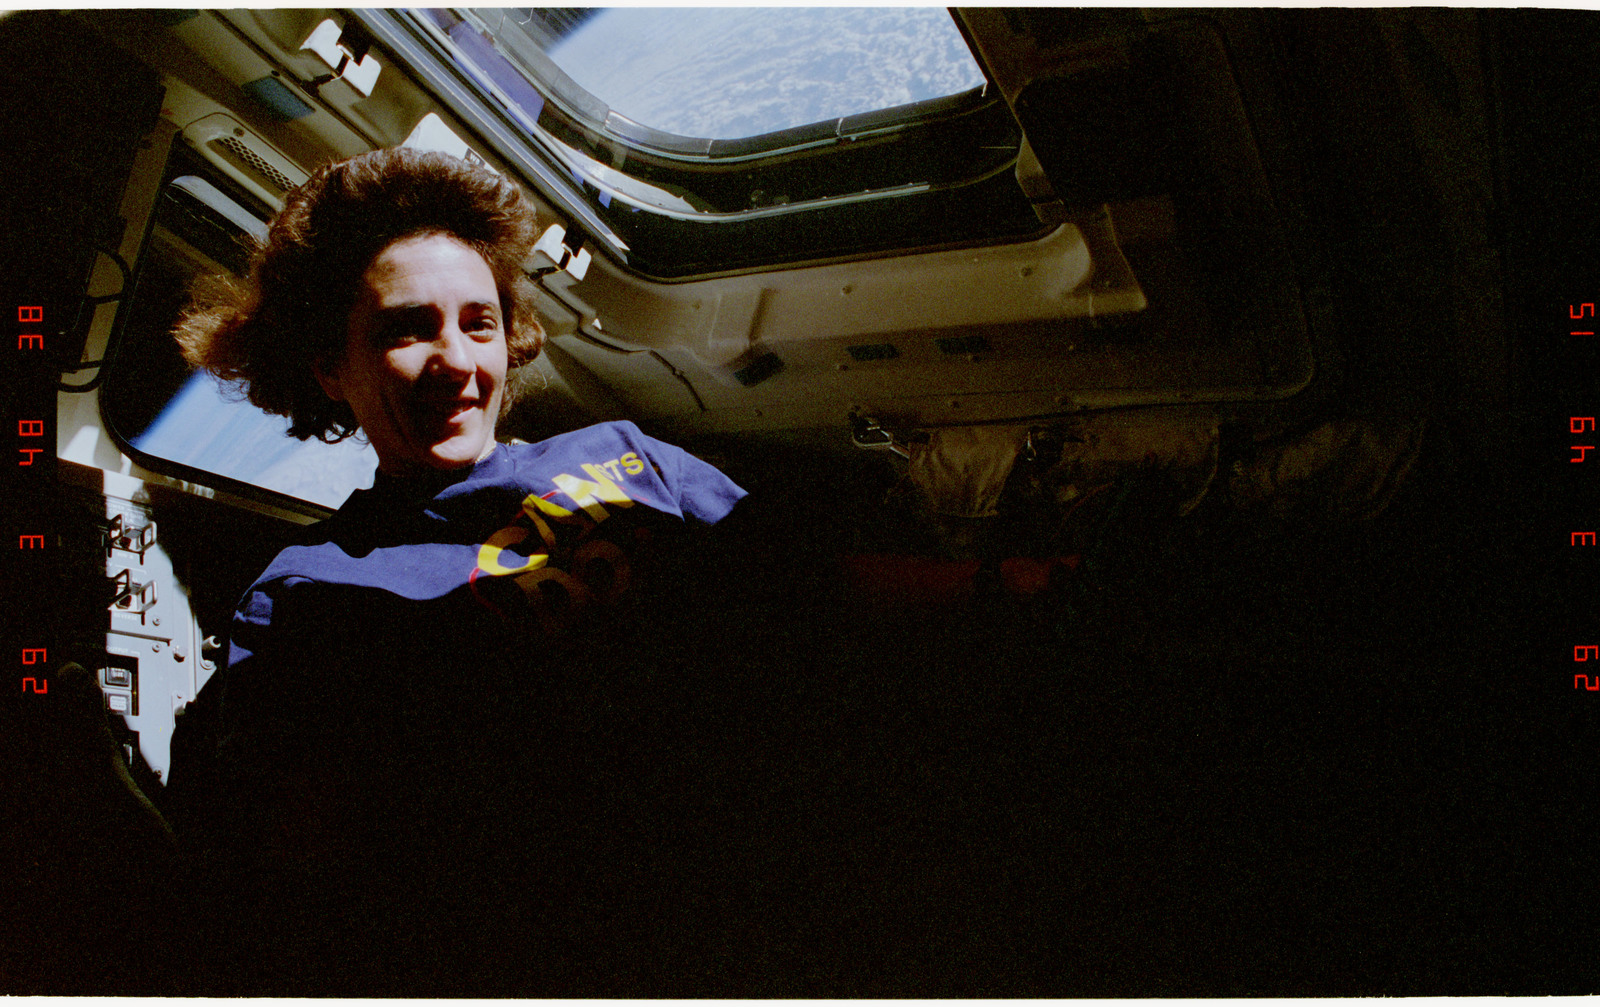 STS057-225-011 - STS-057 - Candid views of a crewmember in the aft flight deck.